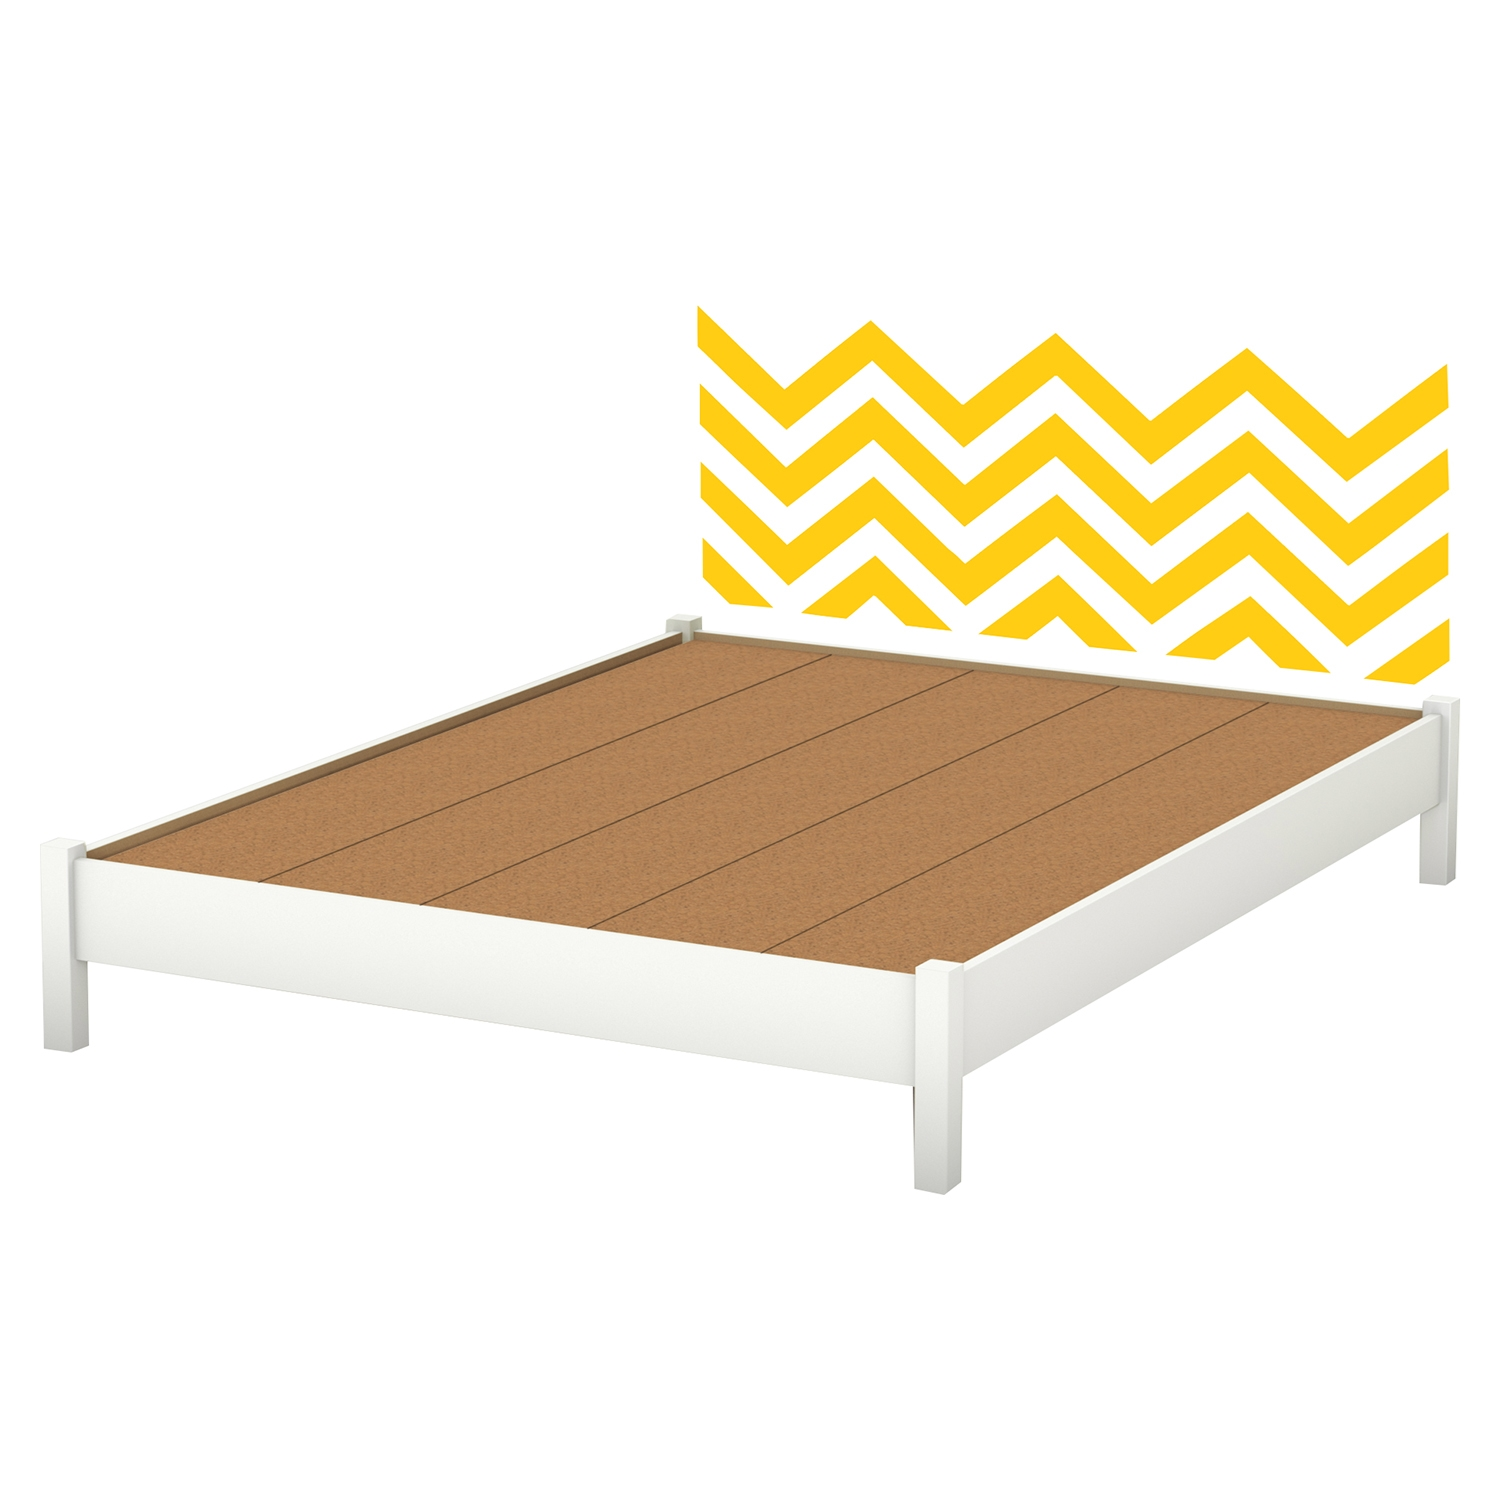 Step One Queen Platform Bed with Legs - Yellow Chevron Decal, Pure White